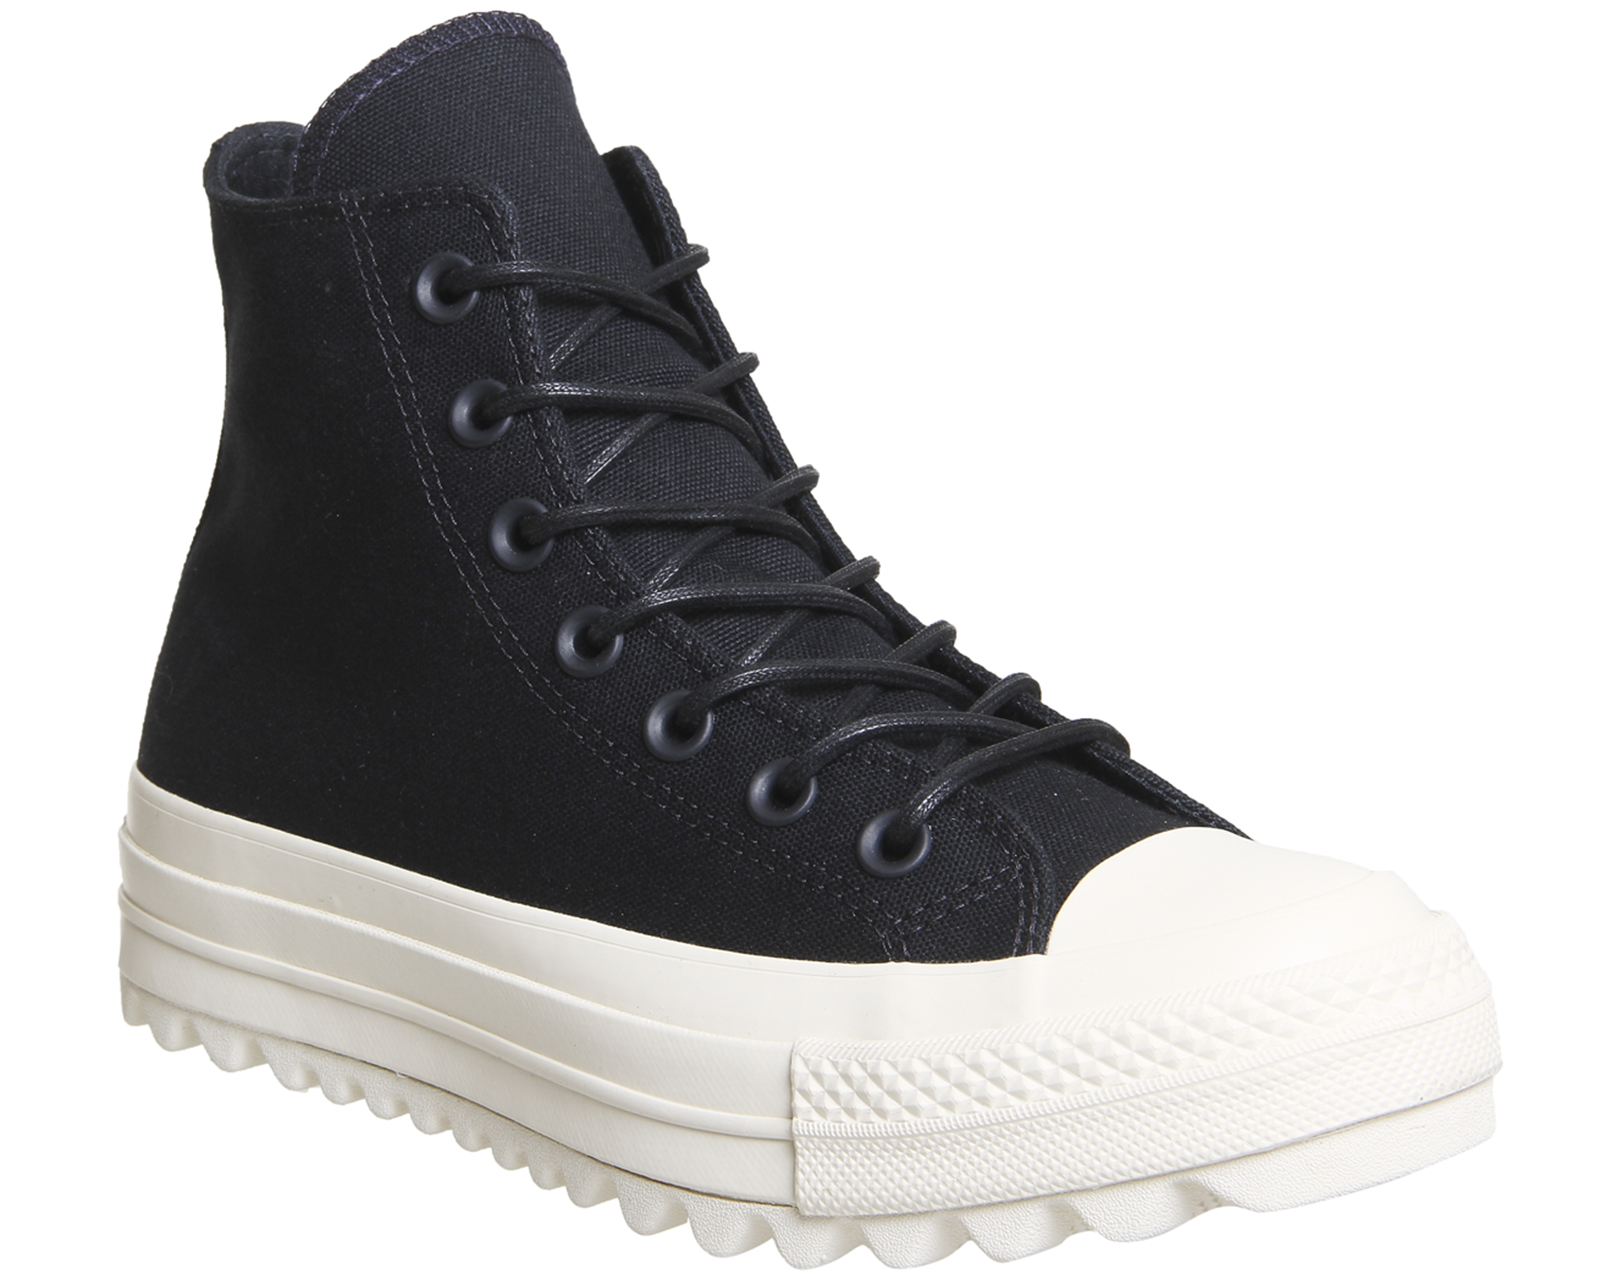 0e9ab1a101c3 Sentinel Womens Converse Chuck Taylor All Star Lift Ripple Hi Black Black  Natural Trainer